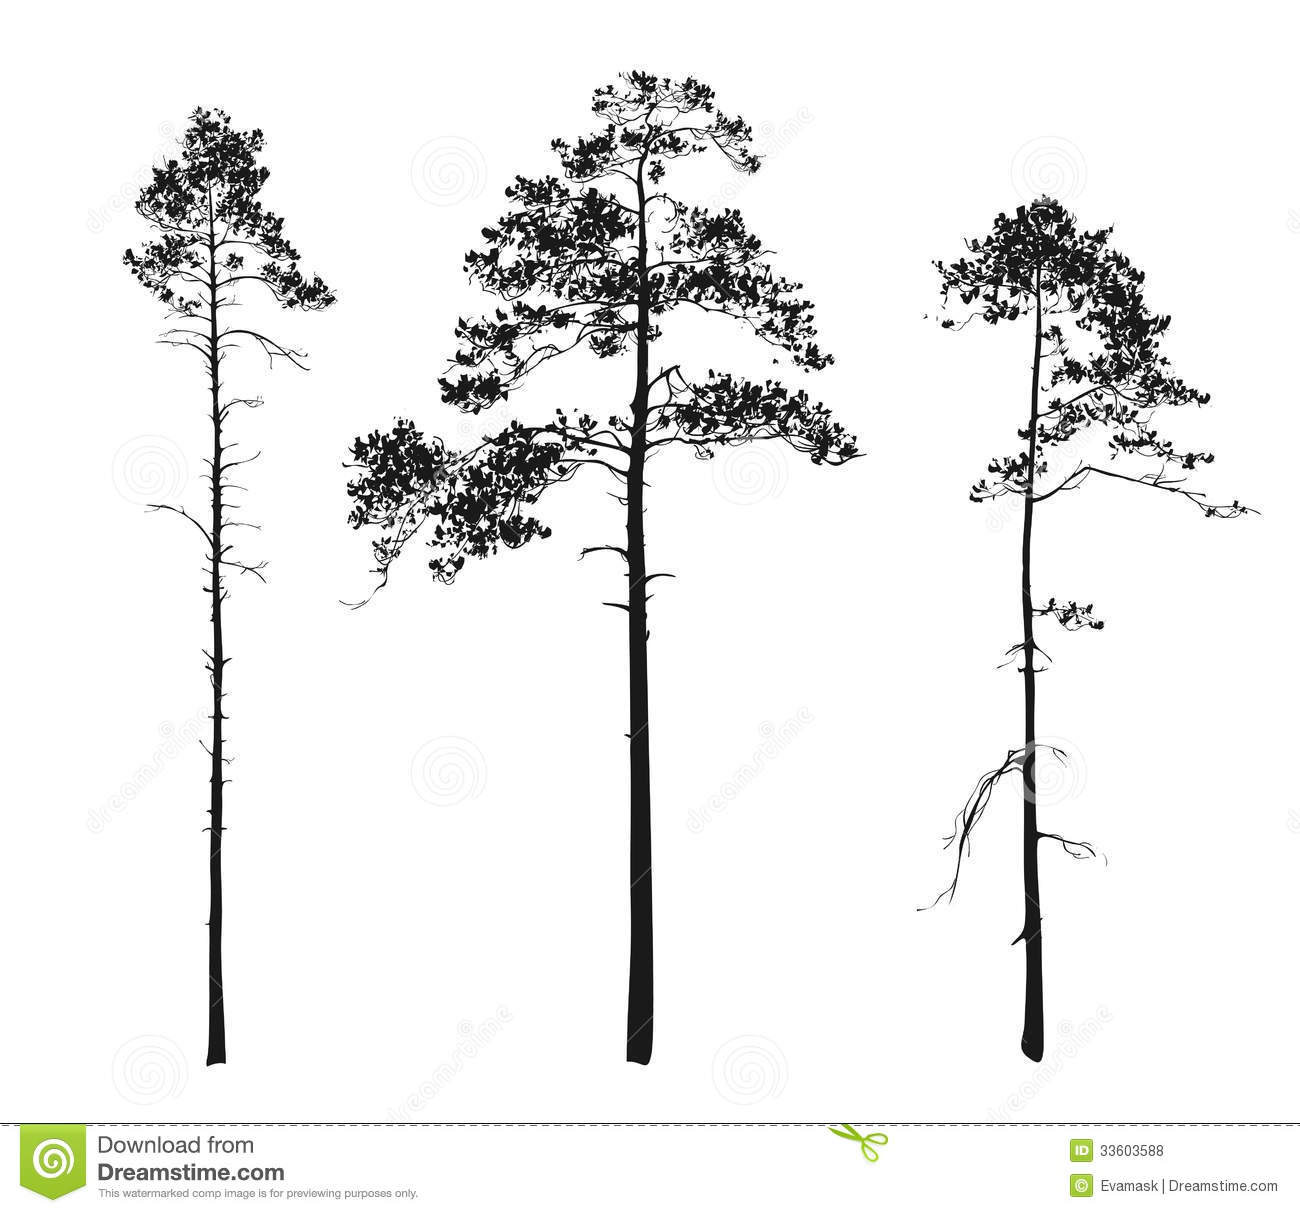 Silhouettes Of Trees Pine Stock Vector Illustration Of Large 33603588